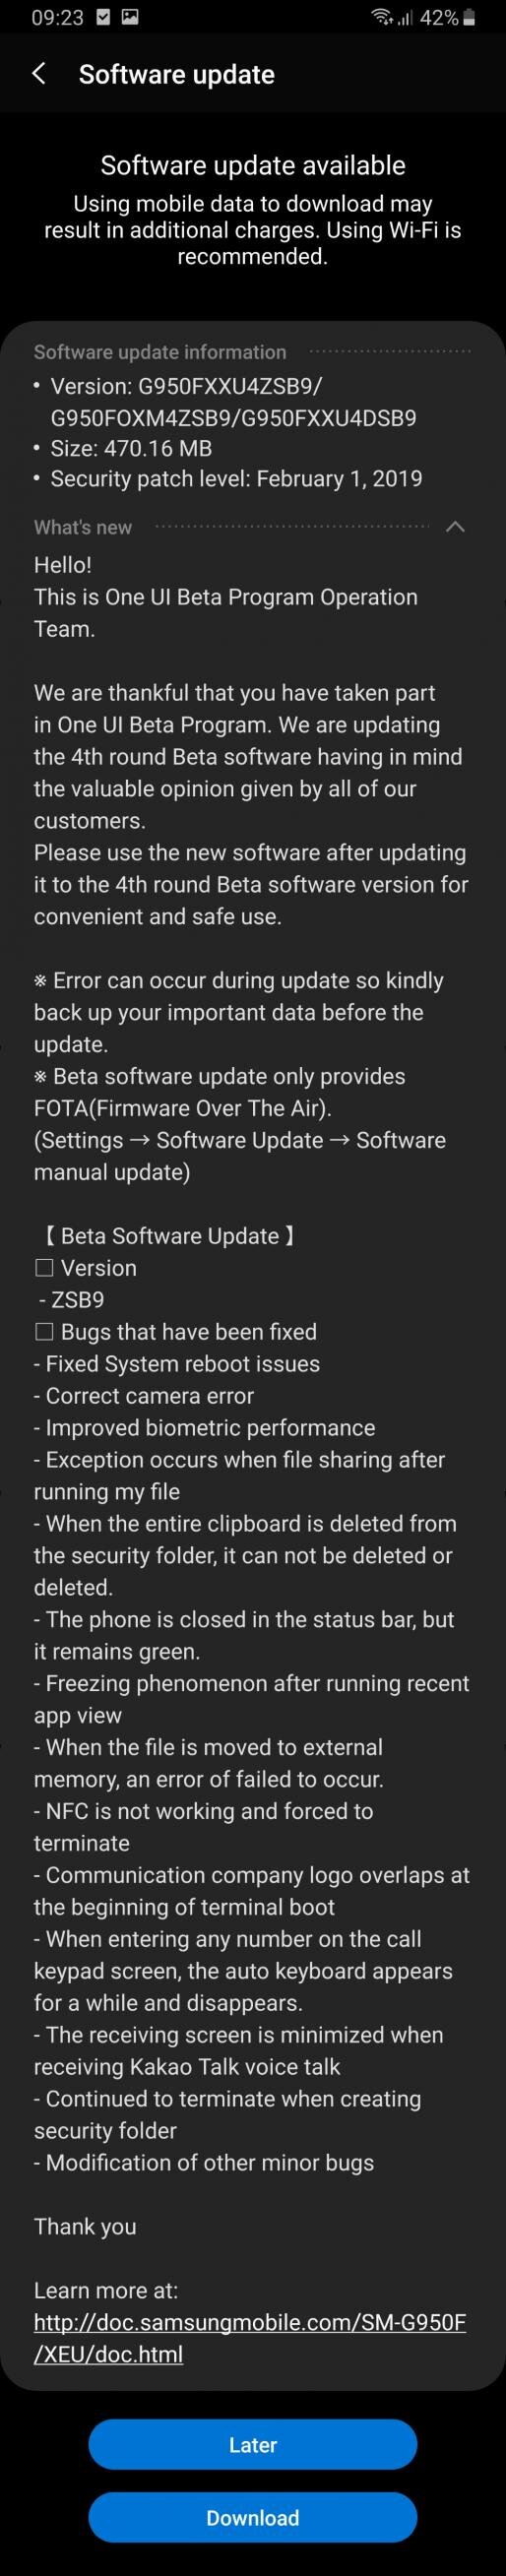 Samsung Galaxy S8 Android Pie beta update four